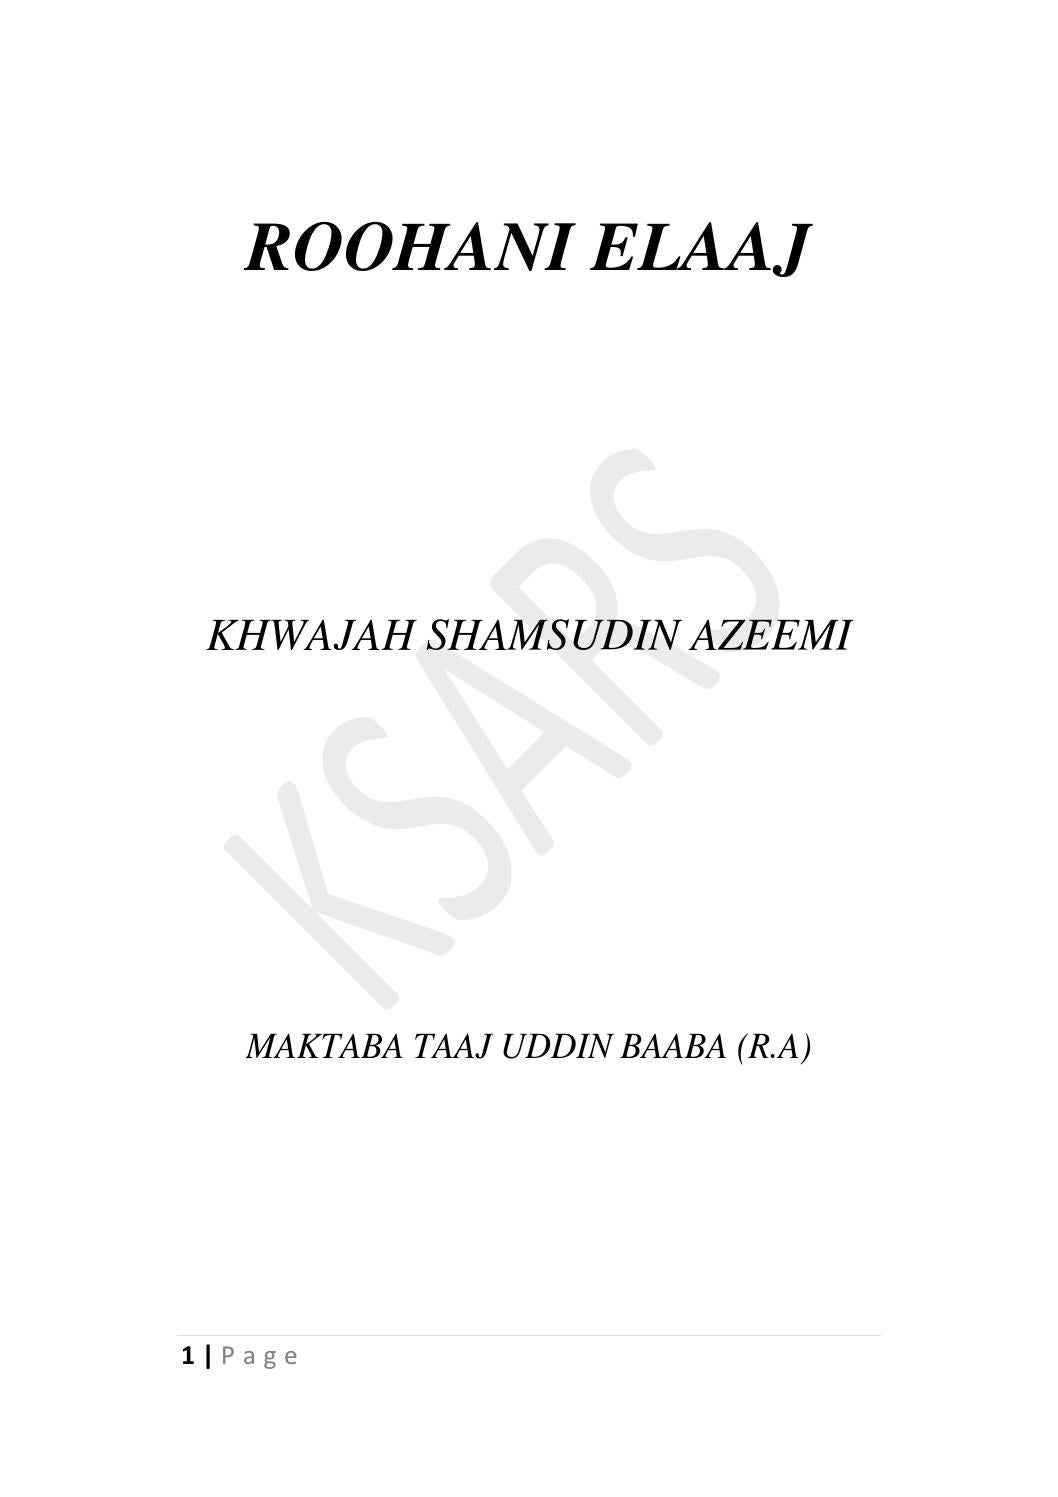 Roohani elaaj roman by It'sMe - issuu